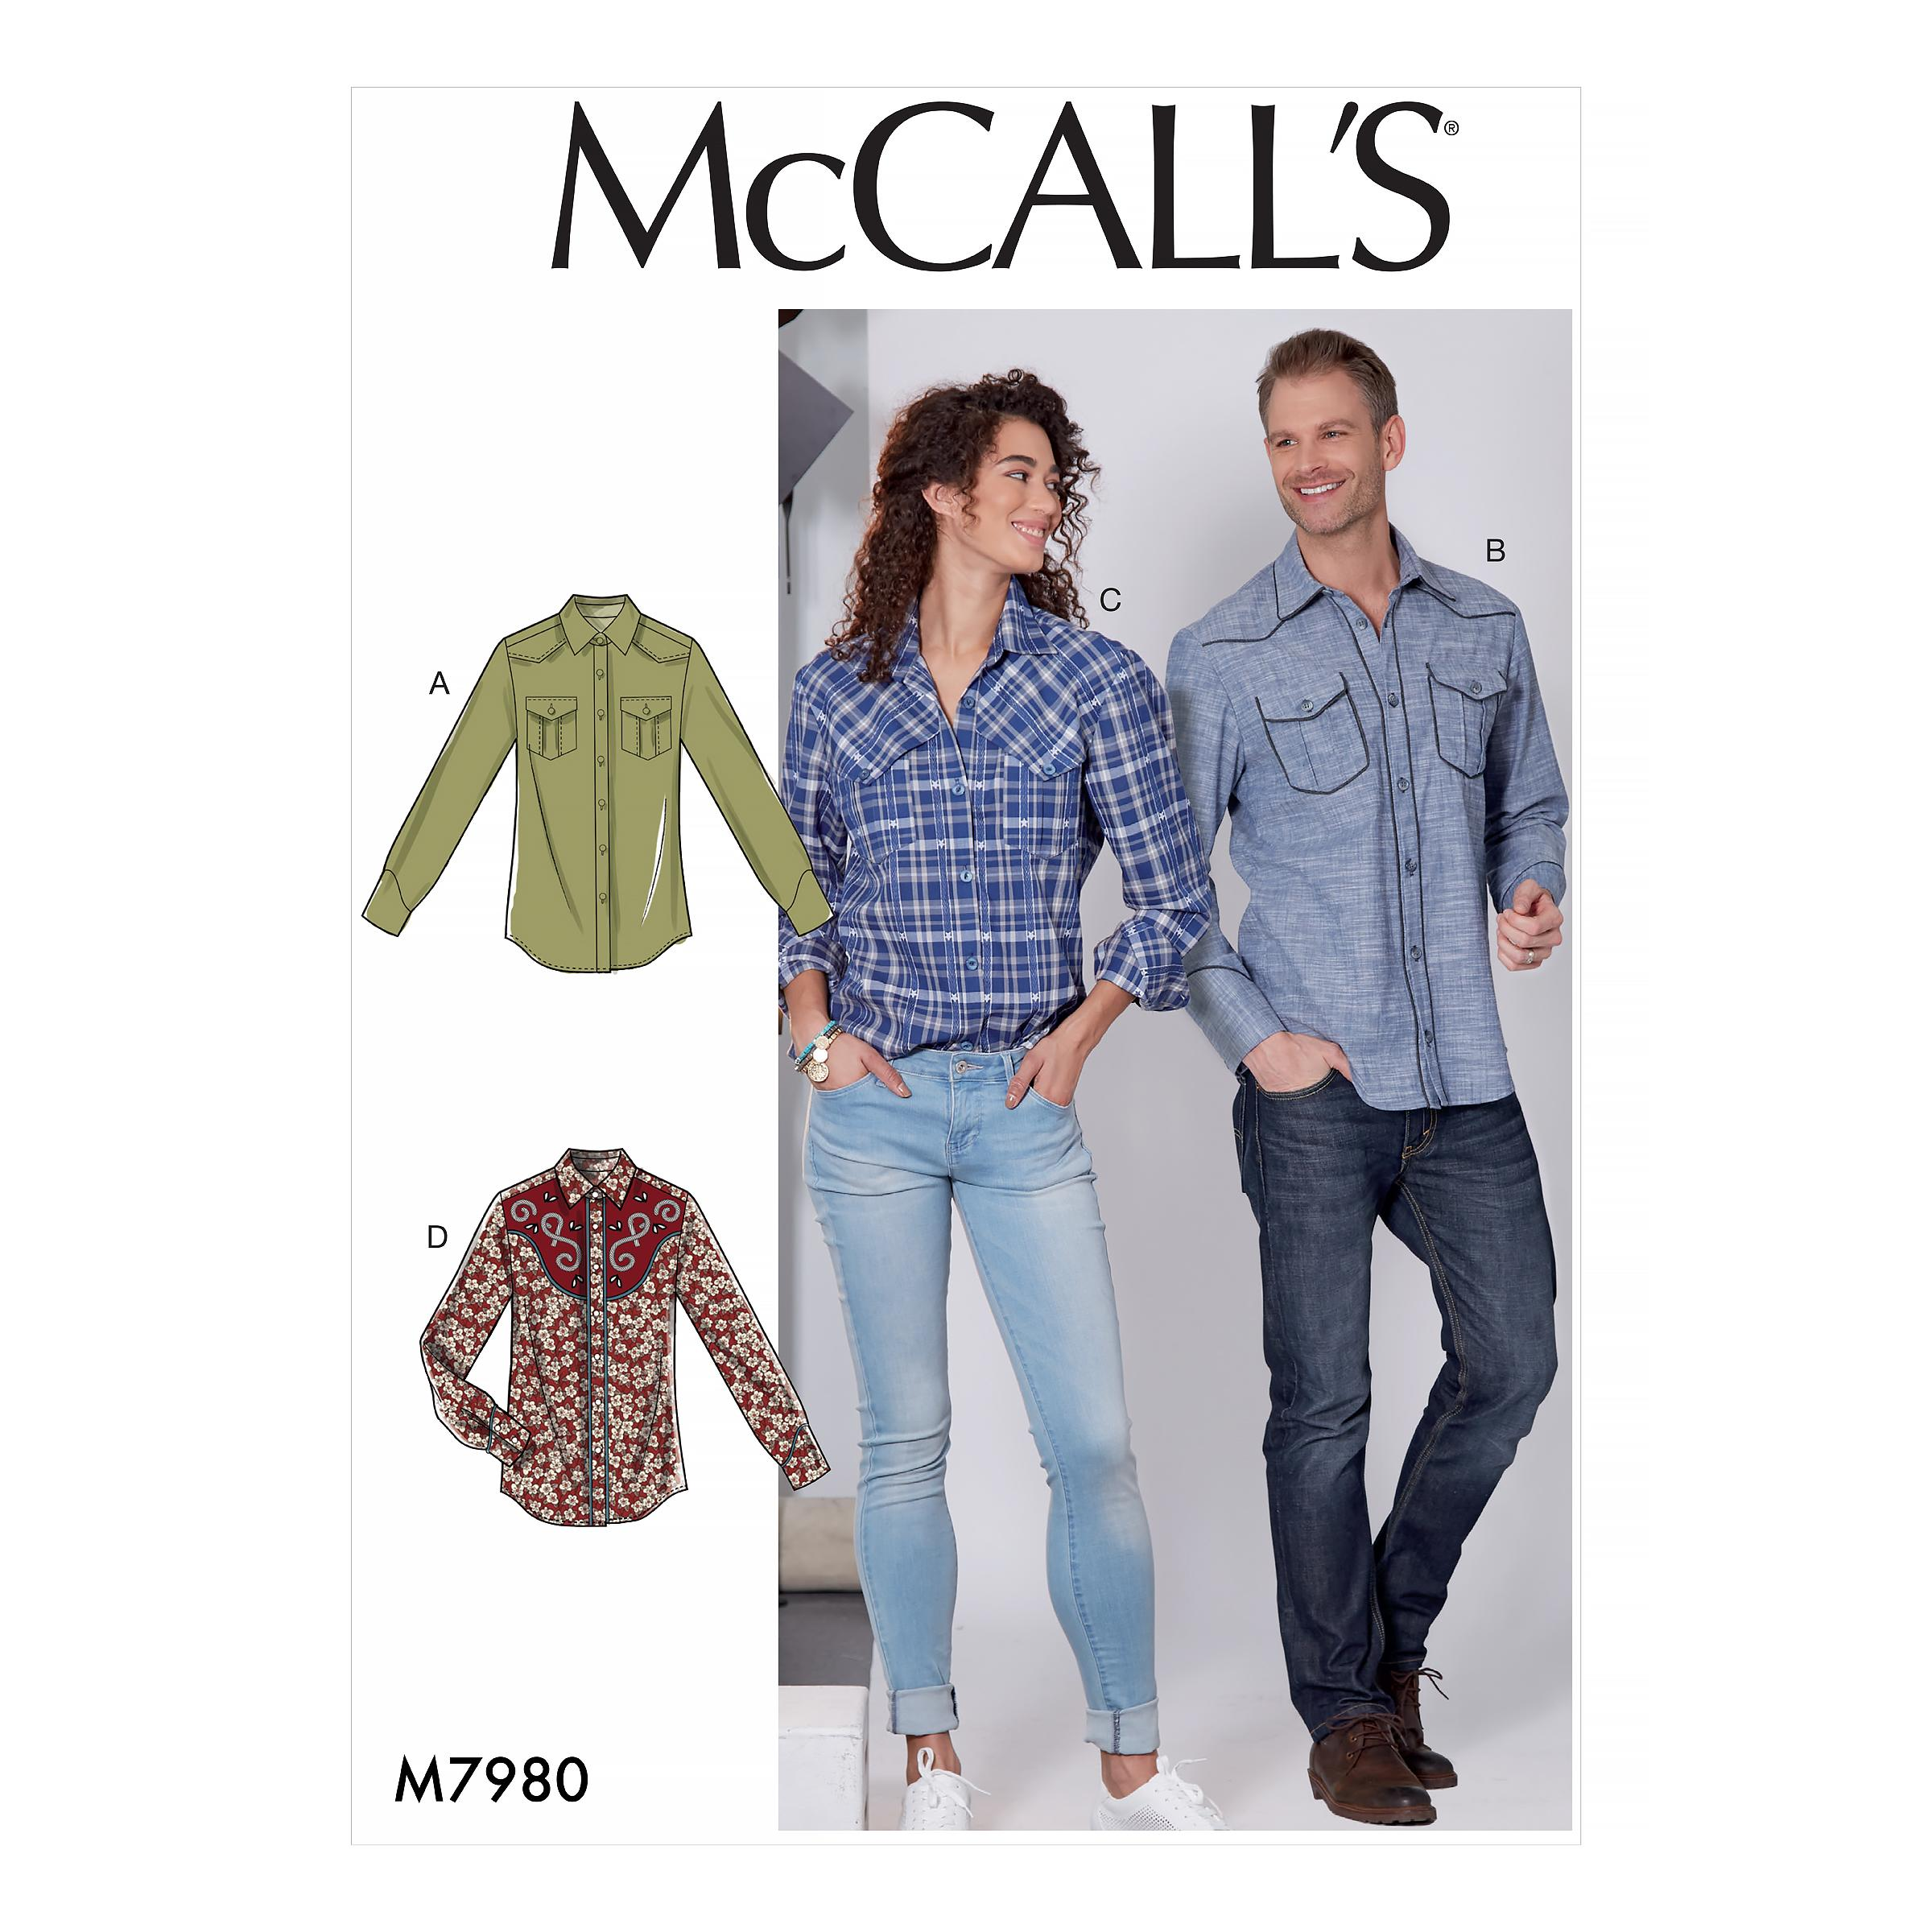 McCalls M7980 Misses Tops, Men